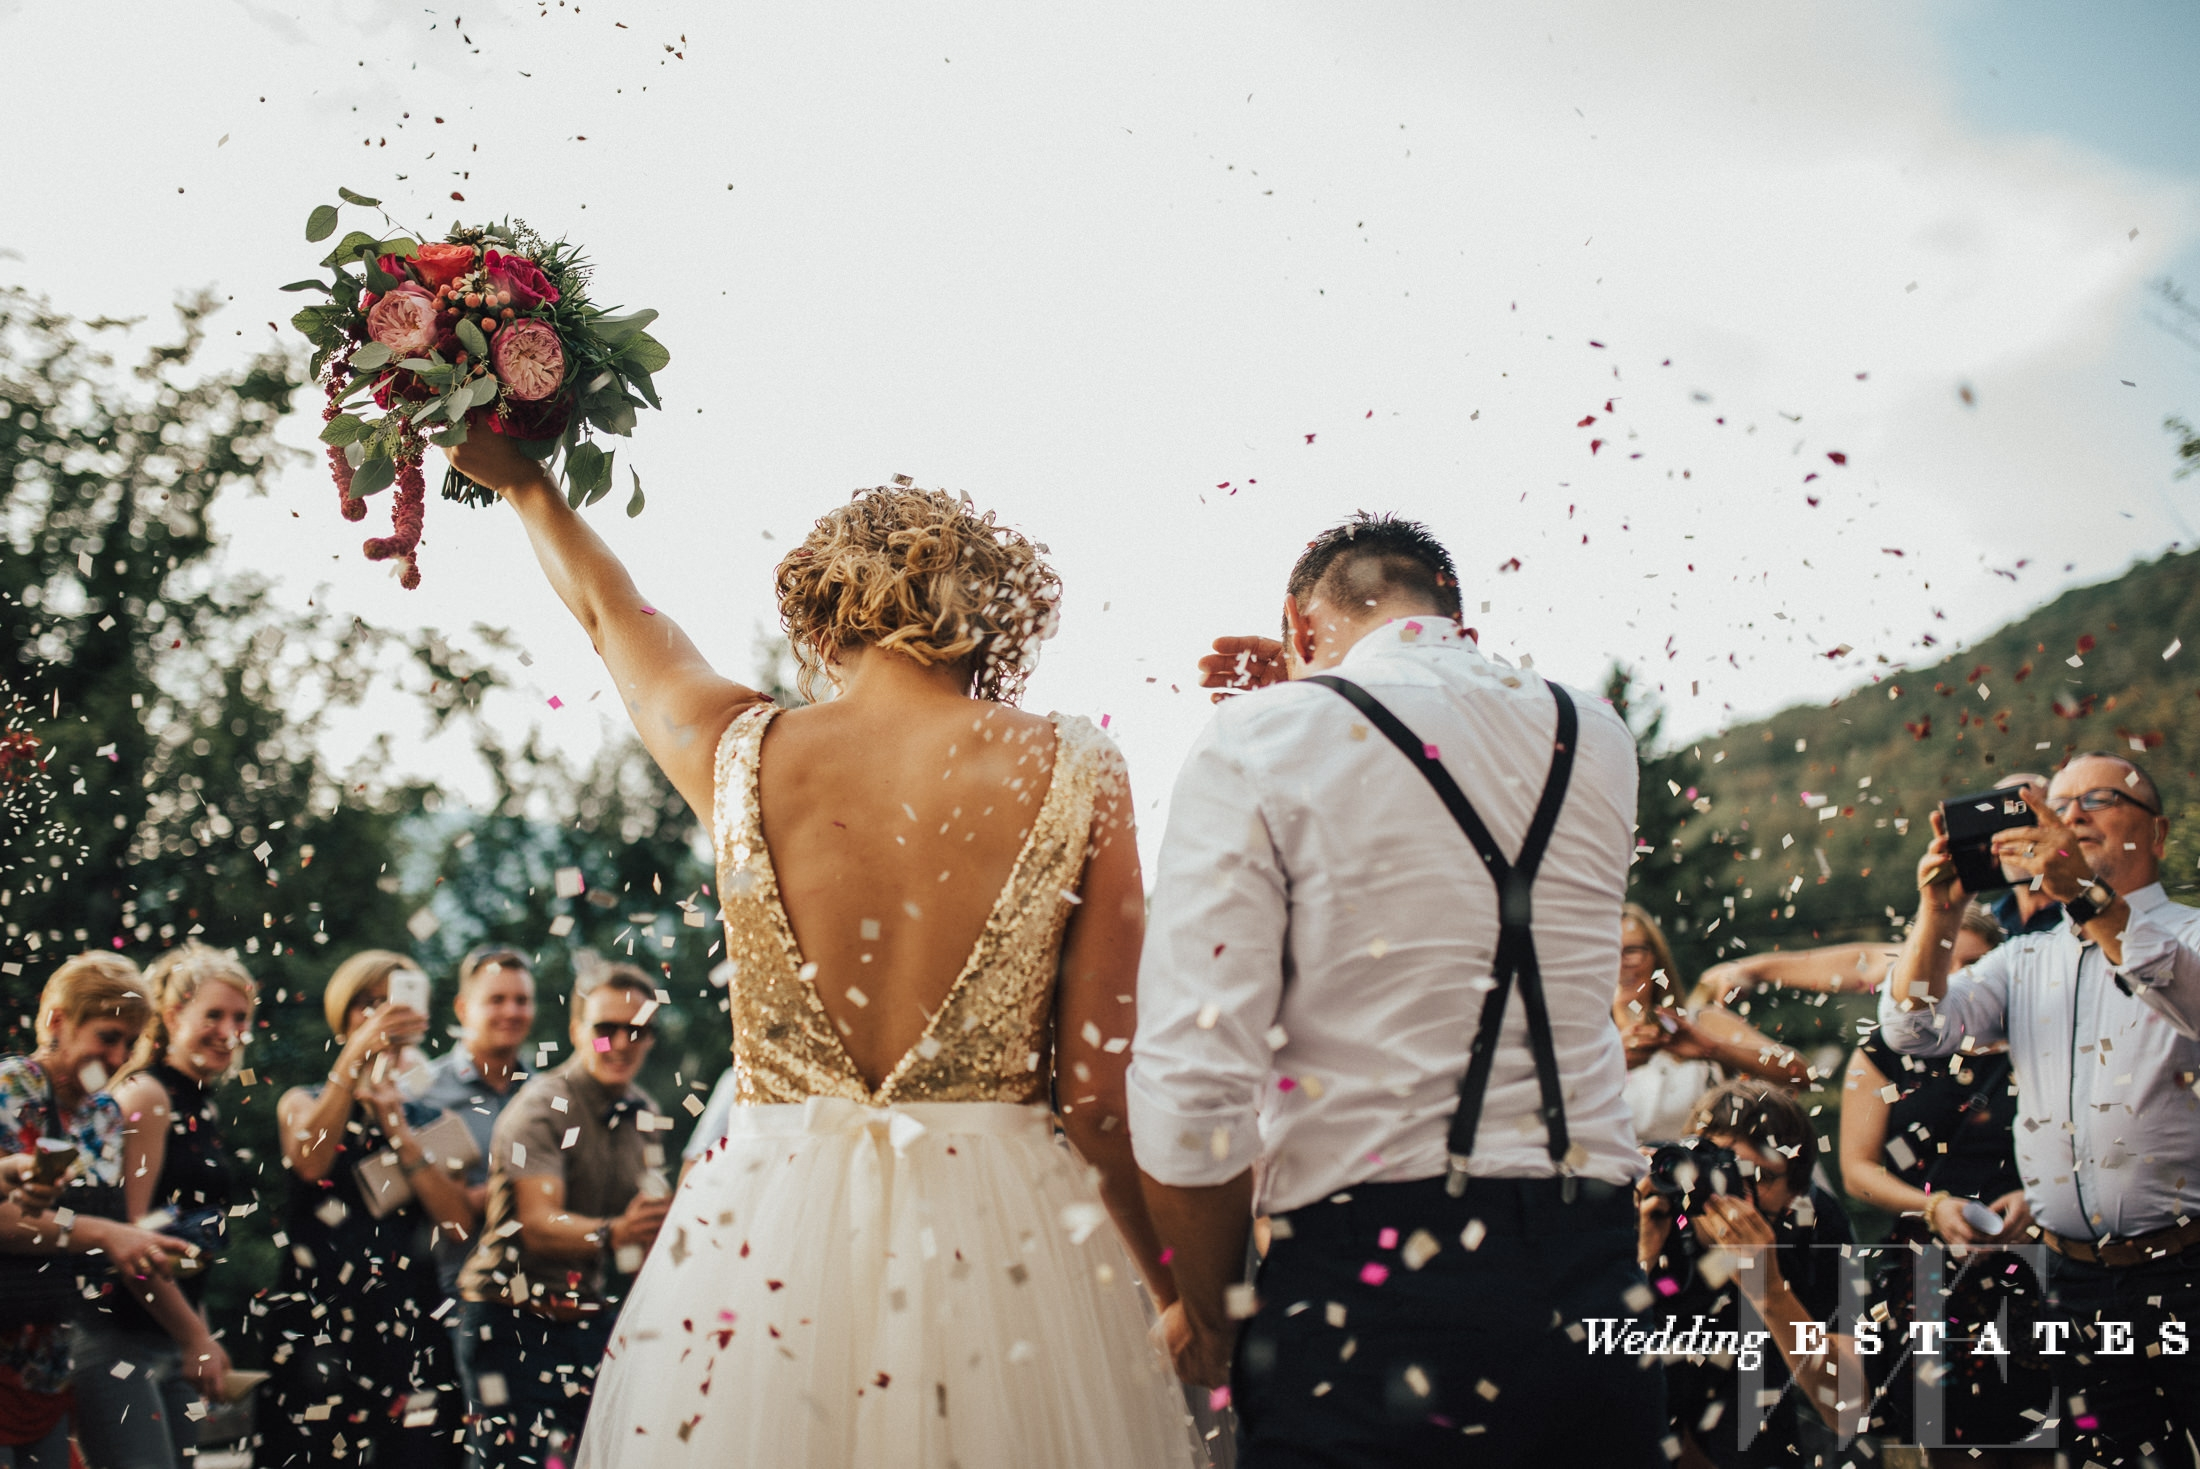 6 Of The Best Wedding Blogs On The Internet